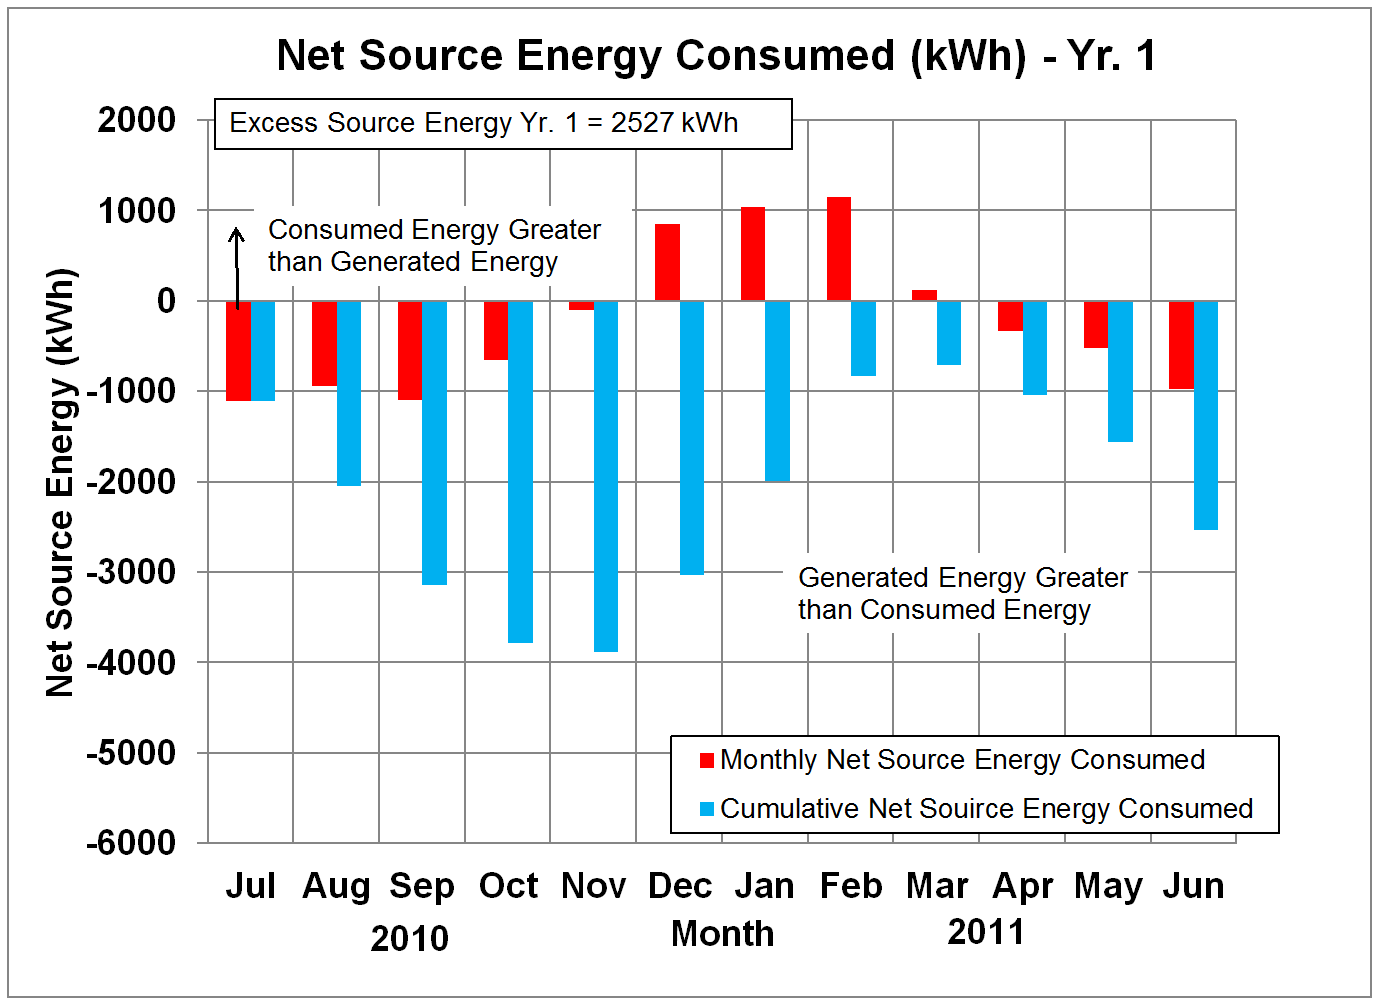 Net Source Energy in kWh - Yr. 1